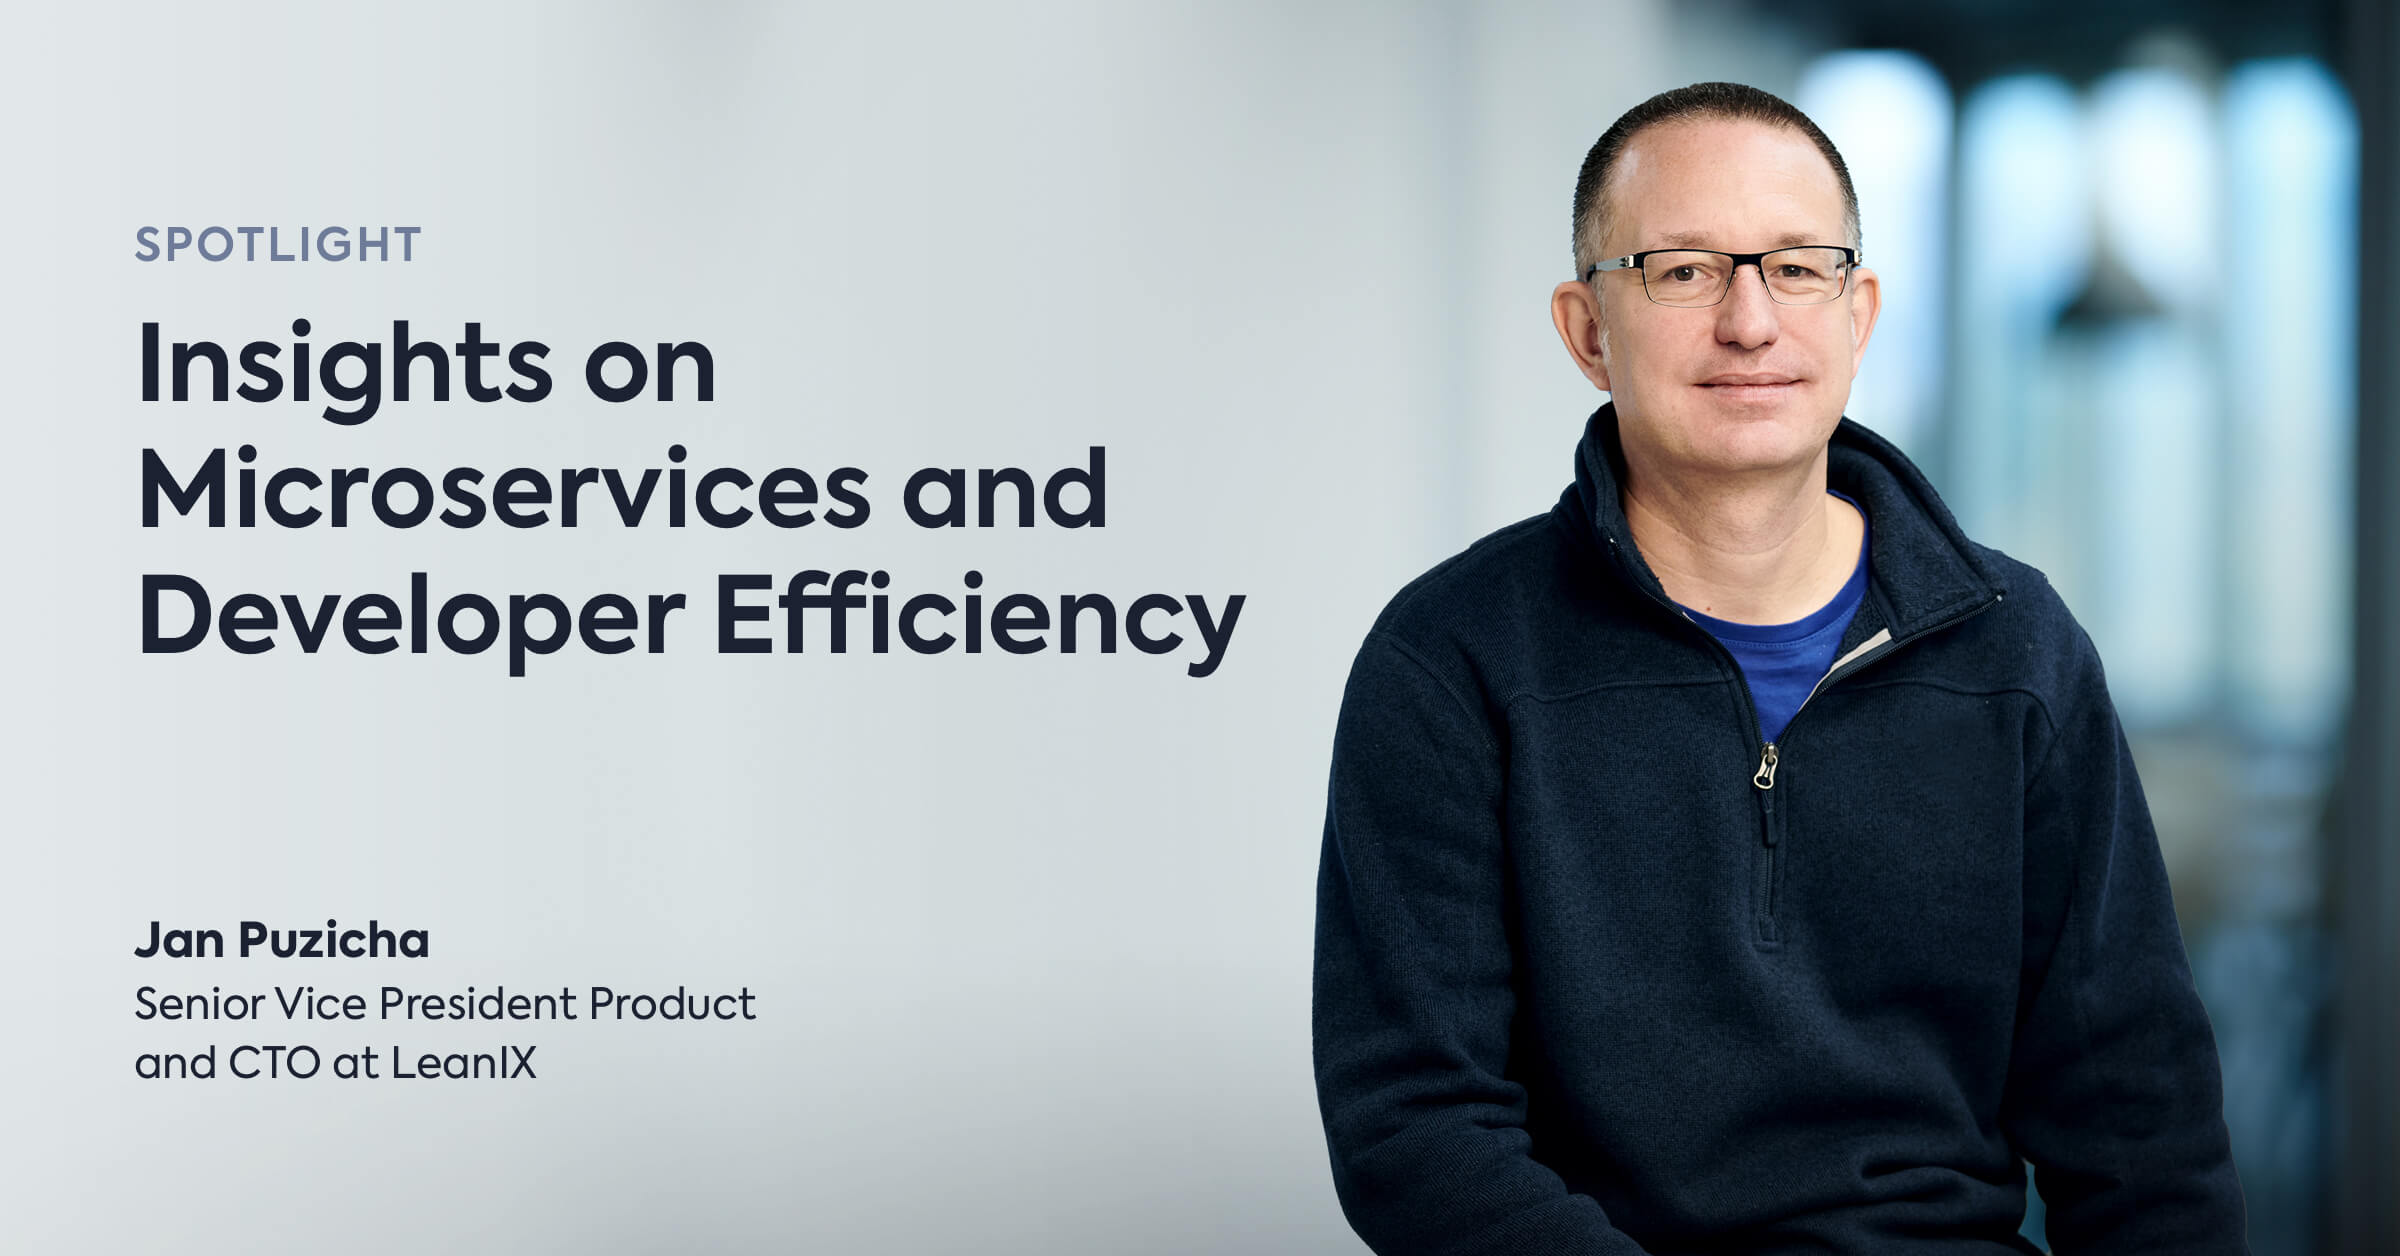 Spotlight: Jan Puzicha Shares Insights on Microservices and Development Efficiency